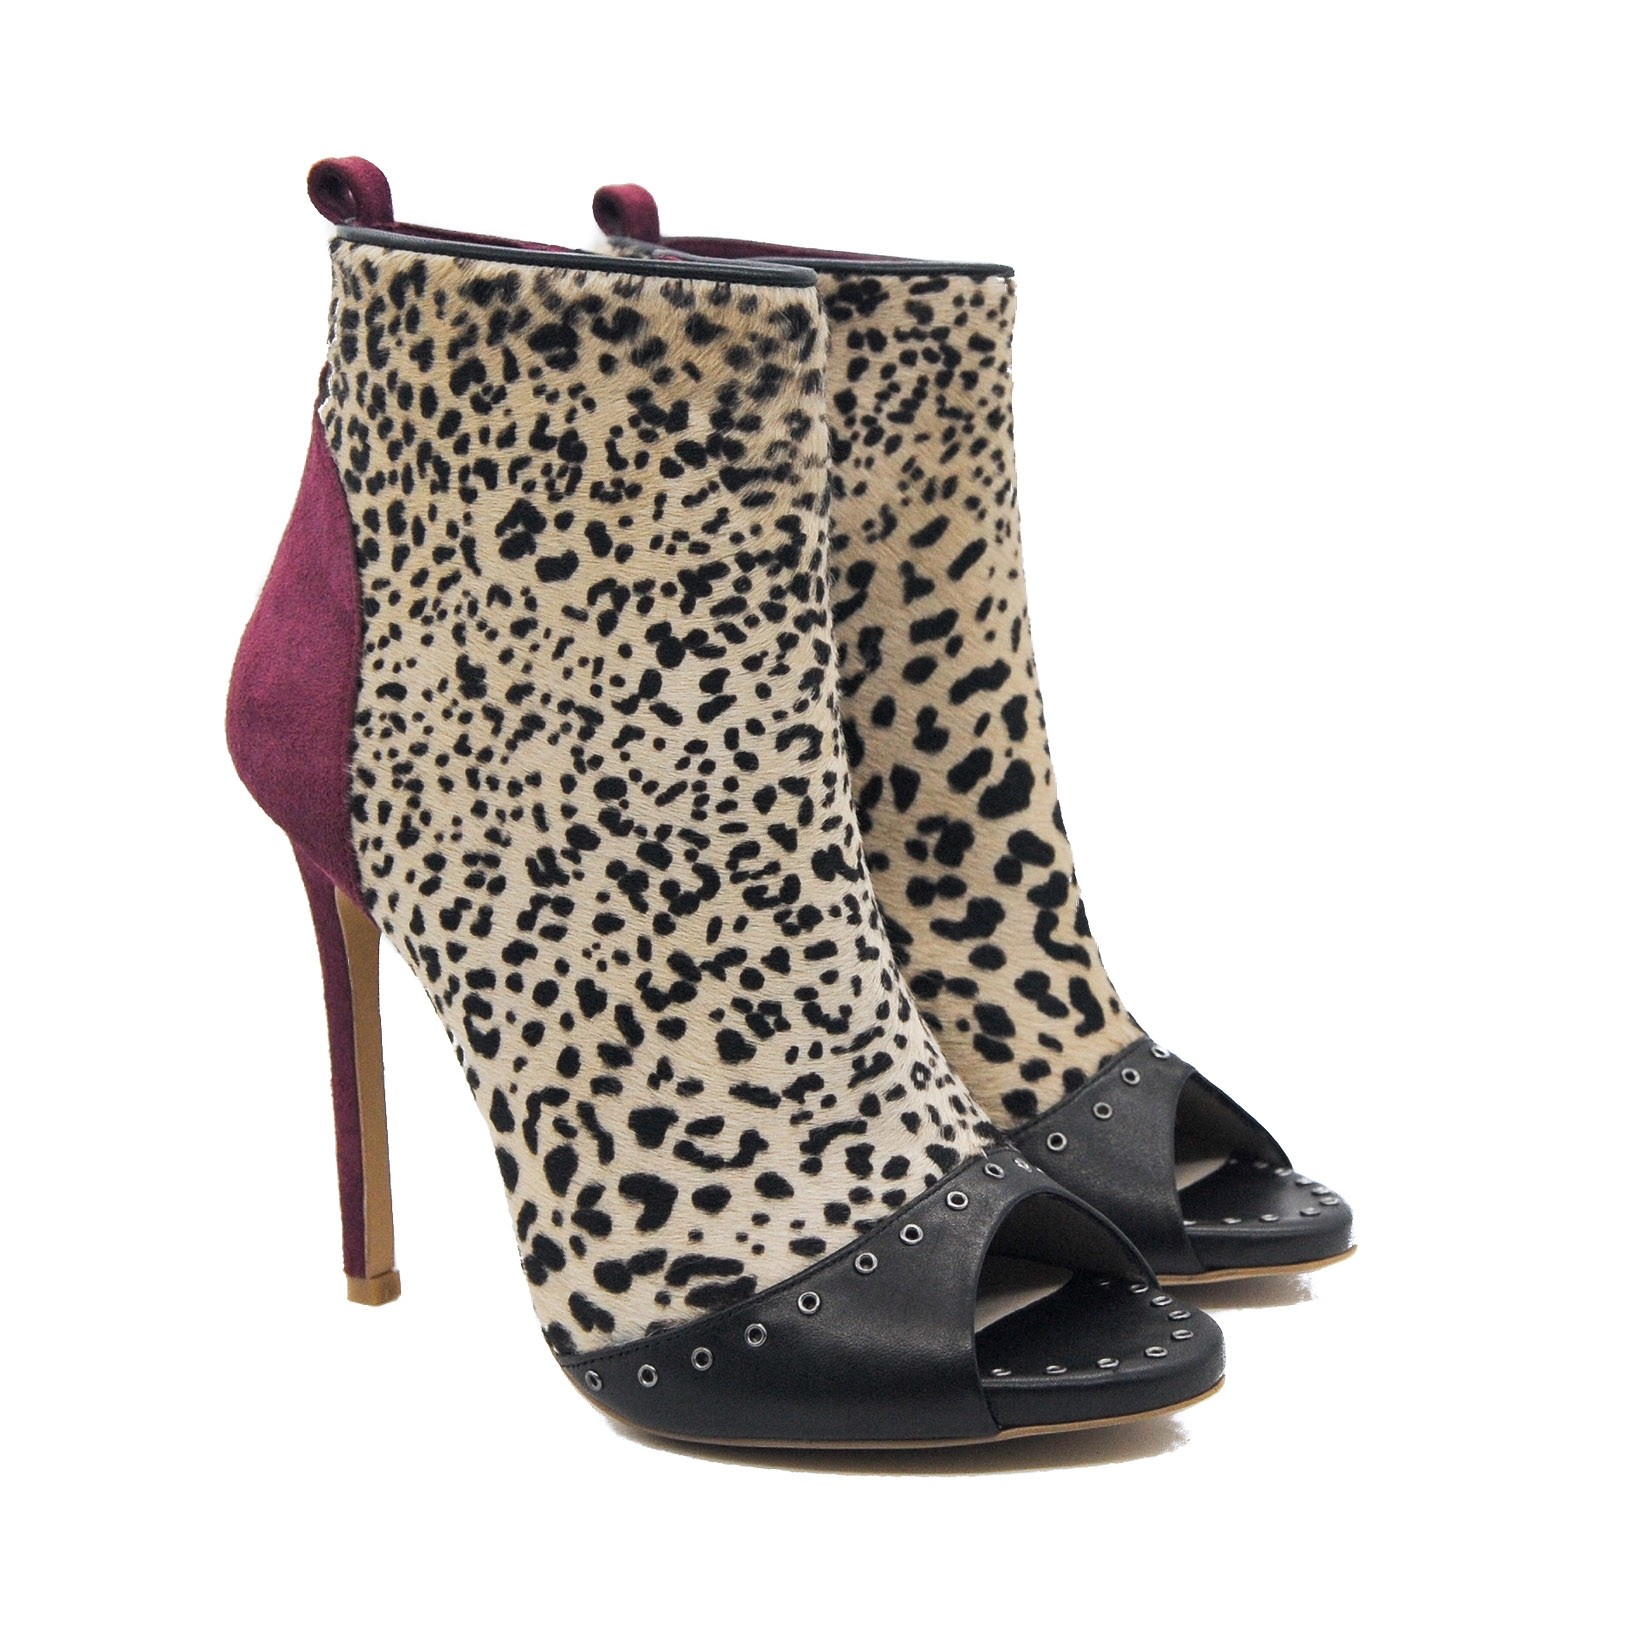 Goody2Shoes Fuchsia Suede and Cheetah Print Pony Hair Peep Toe Stiletto Shoe Boot